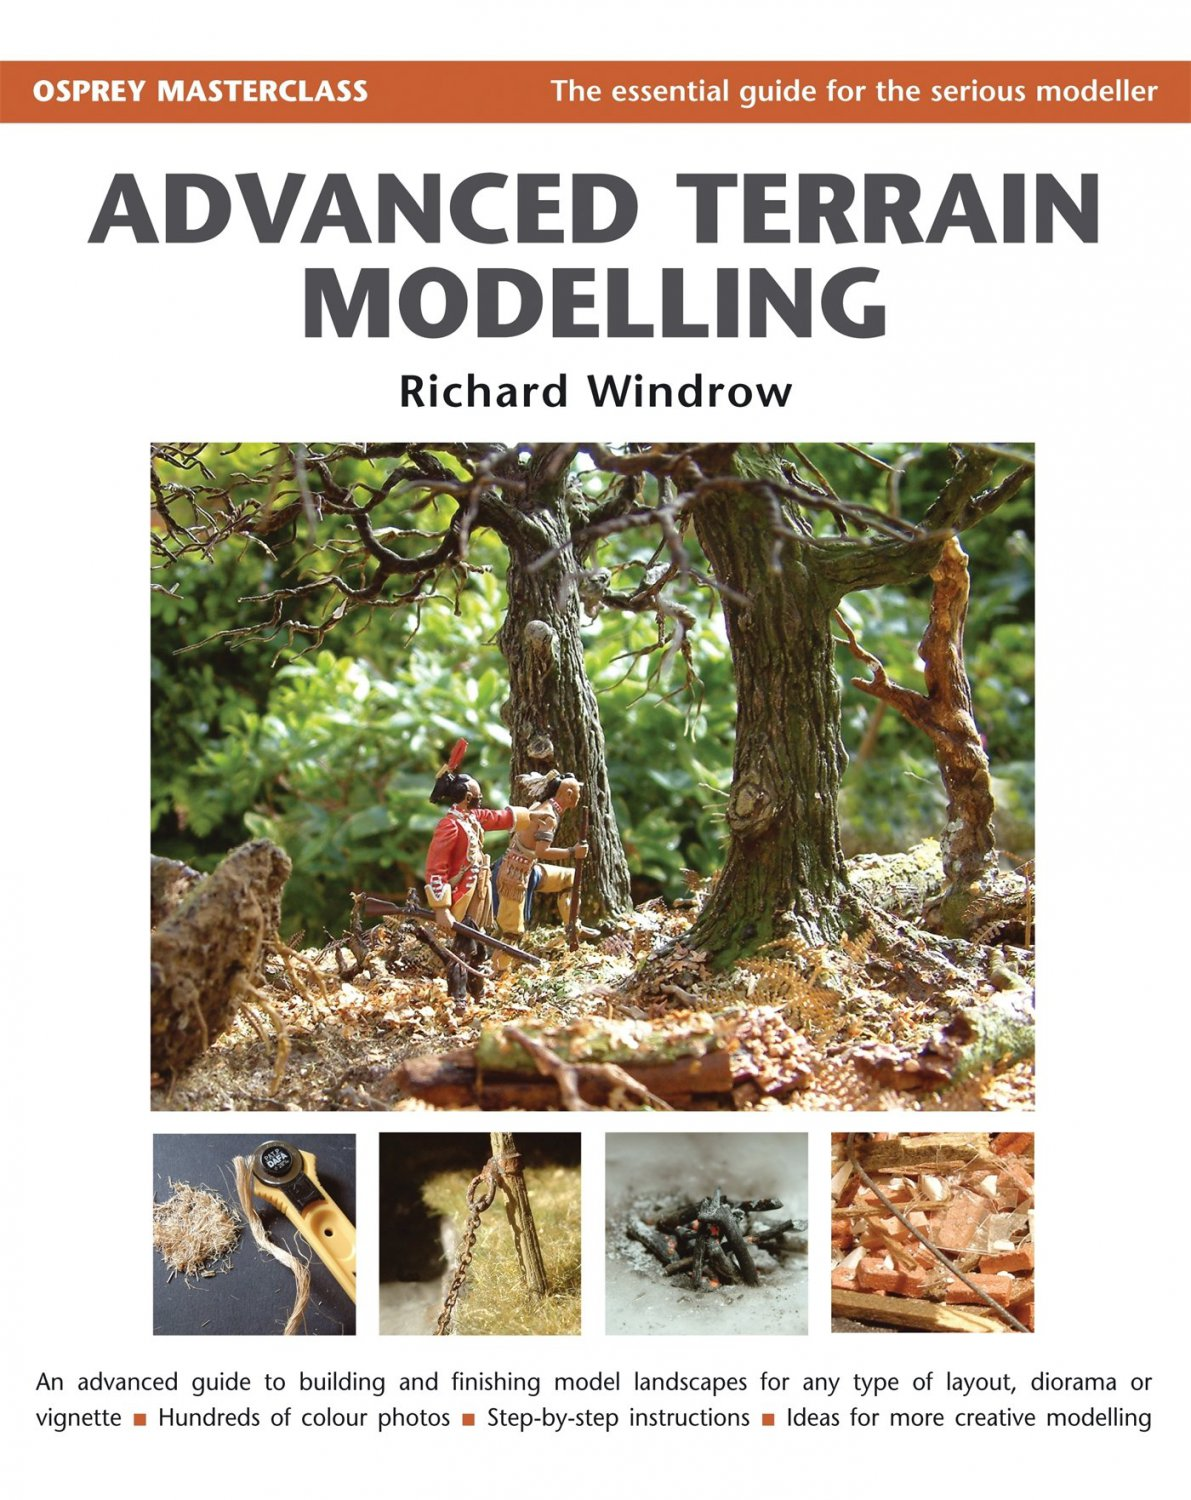 Advanced Terrain Modelling (Modelling Masterclass) by Richard Windrow - Guide to [eBook]